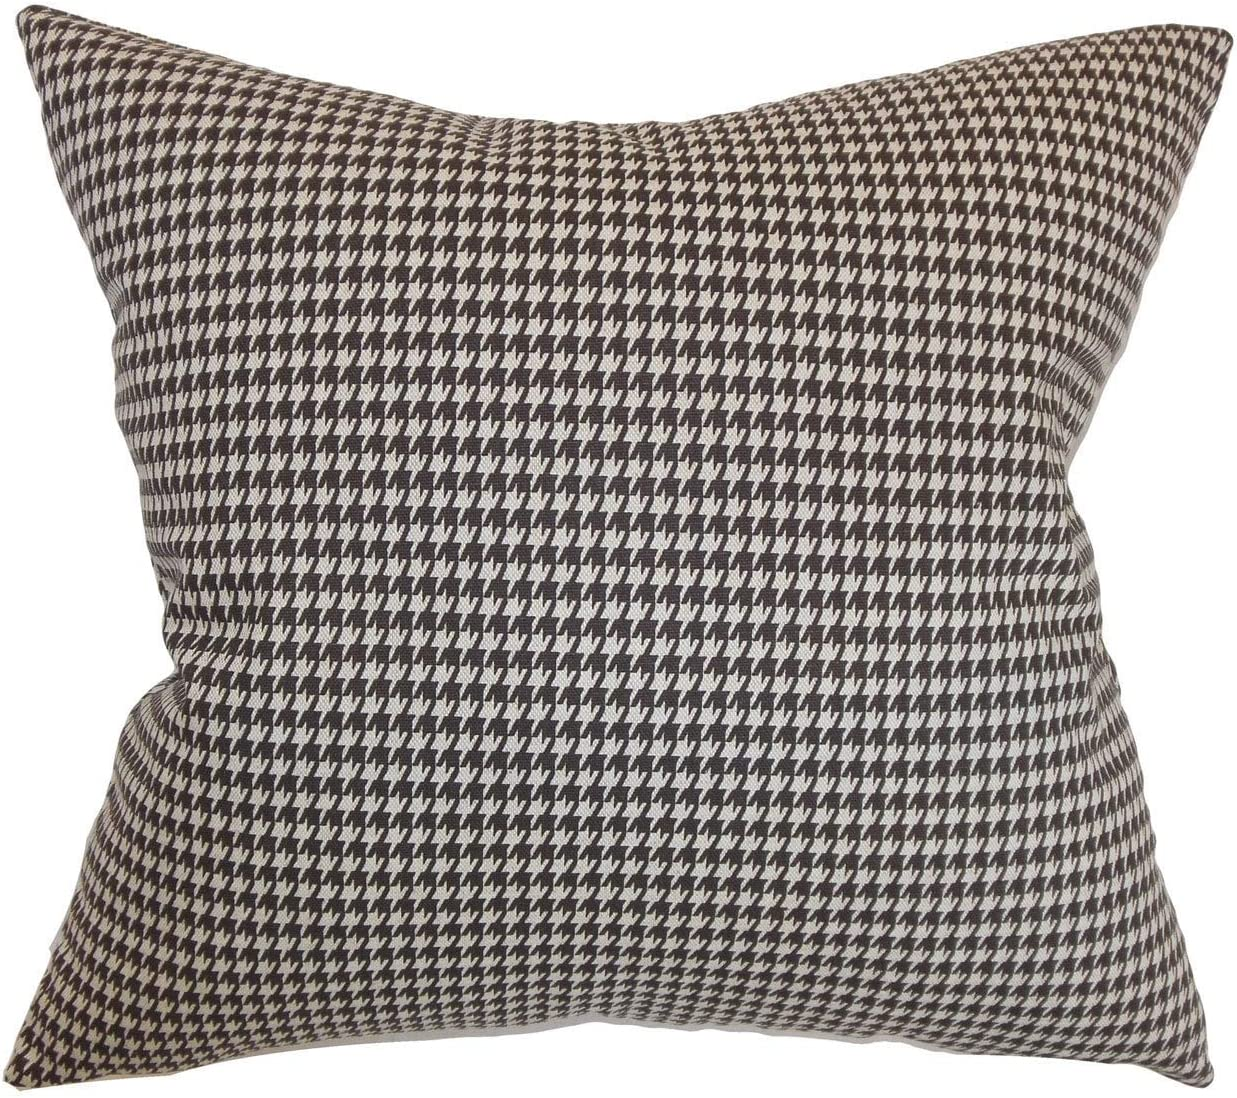 The Pillow Collection Lviv Houndstooth Chocolate Linen Down Filled Throw Pillow Home Kitchen